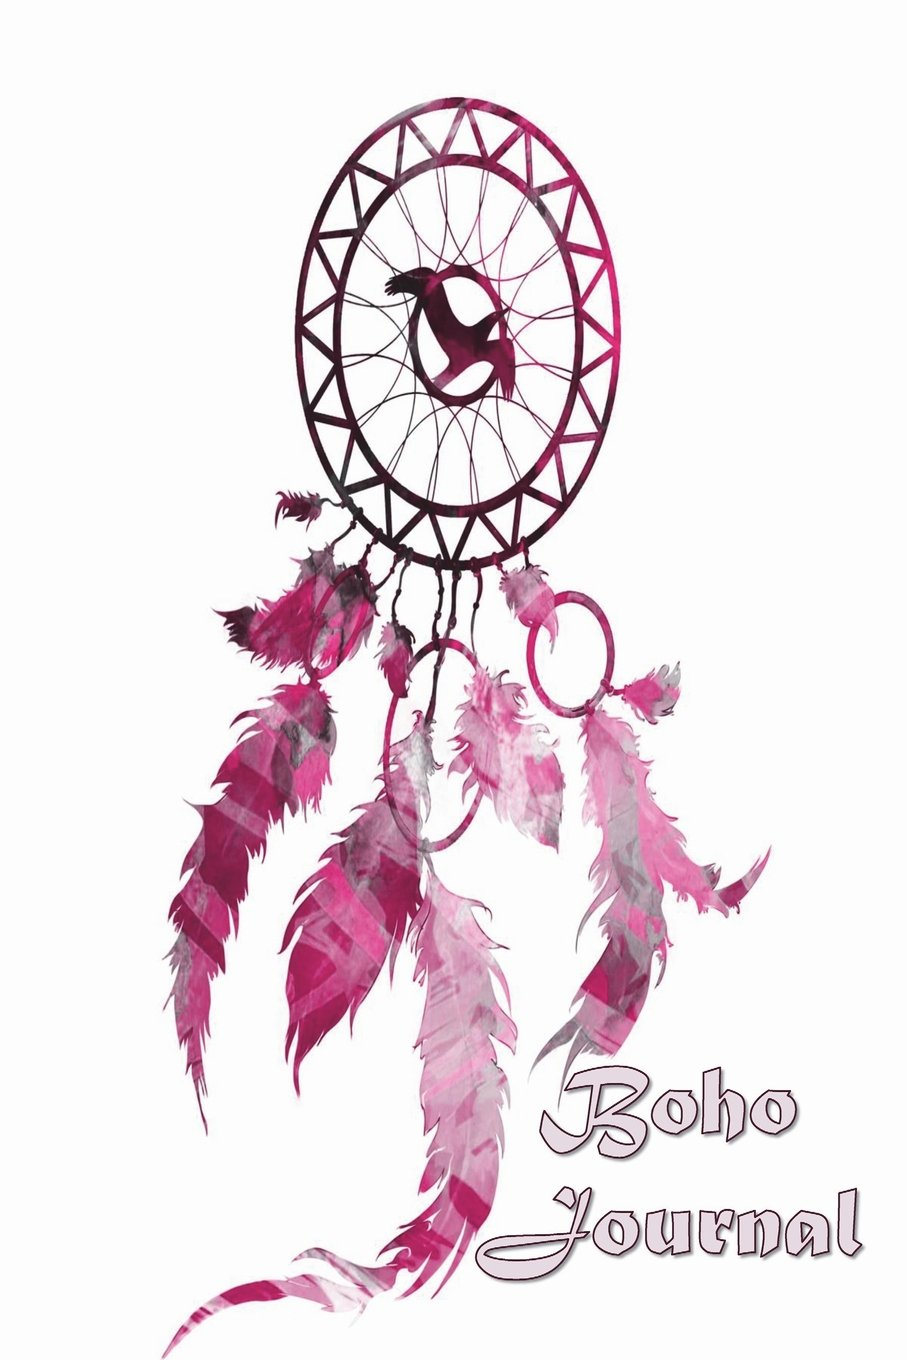 Download Boho Journal: 140 Lined Pages Softcover Notes Diary, Creative Writing, Class Notes, Composition Notebook - Pink Watercolor Dreamcatcher ebook